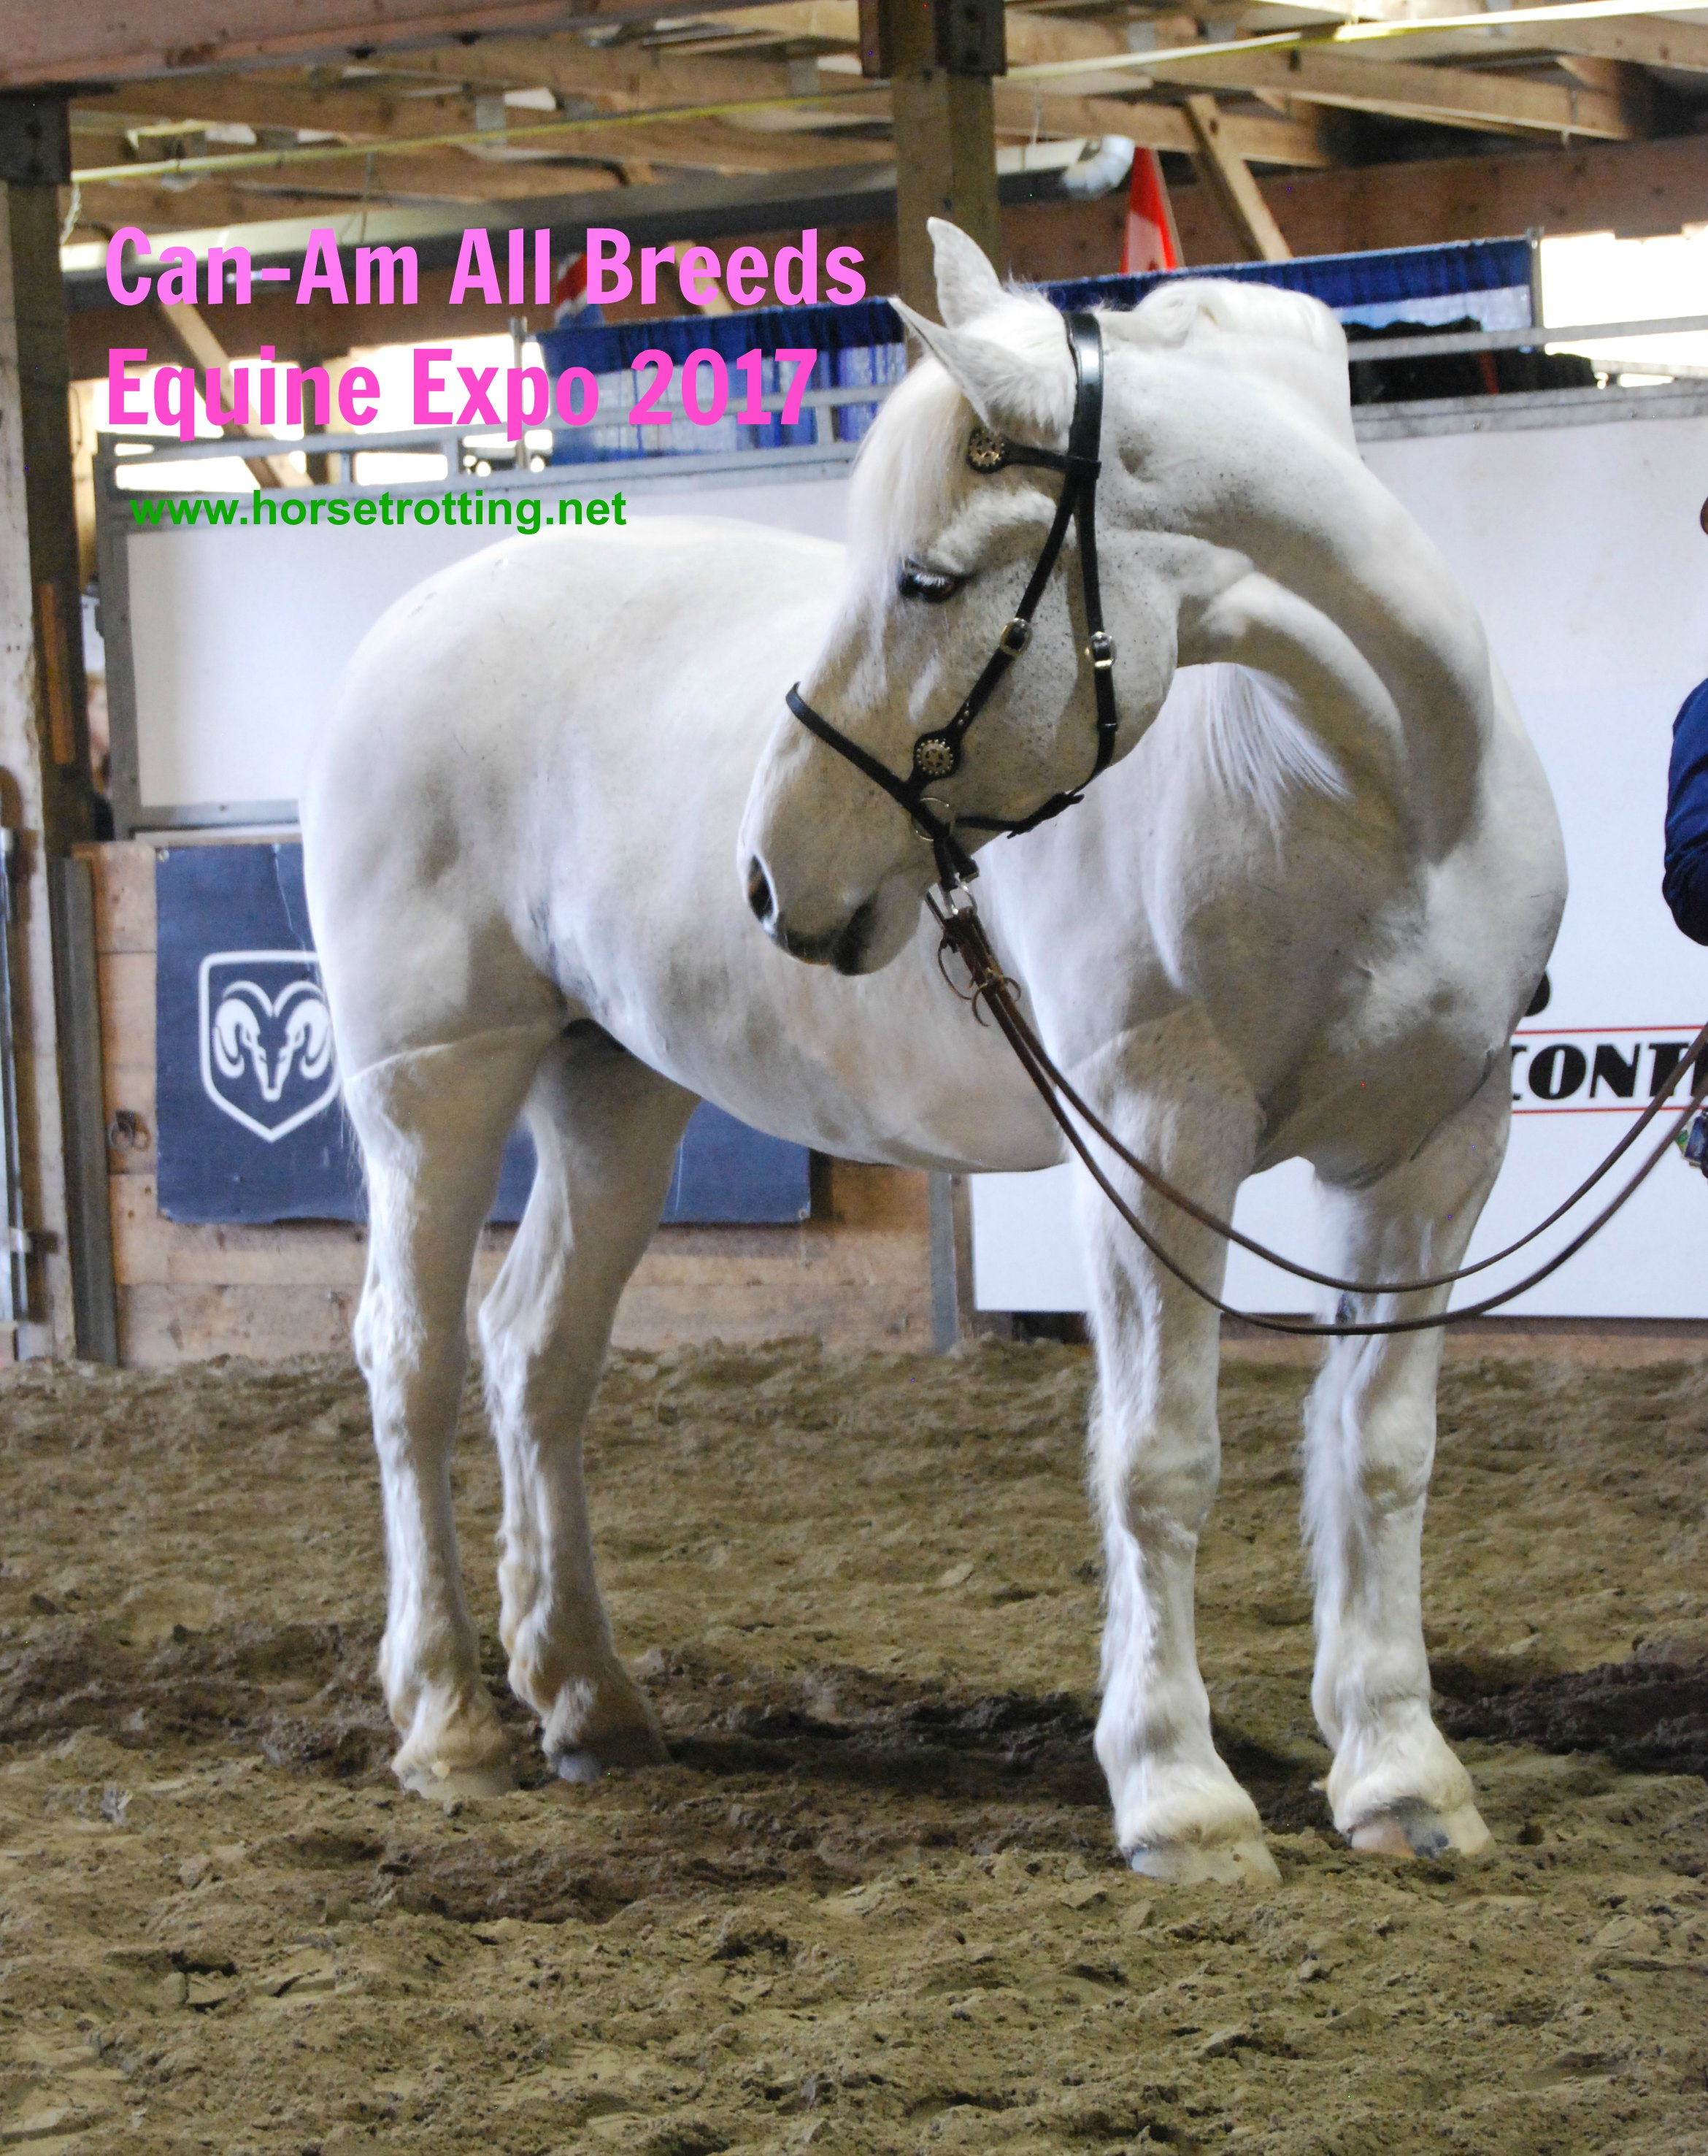 Can-Am All Breeds Equine Expo 2017 horse